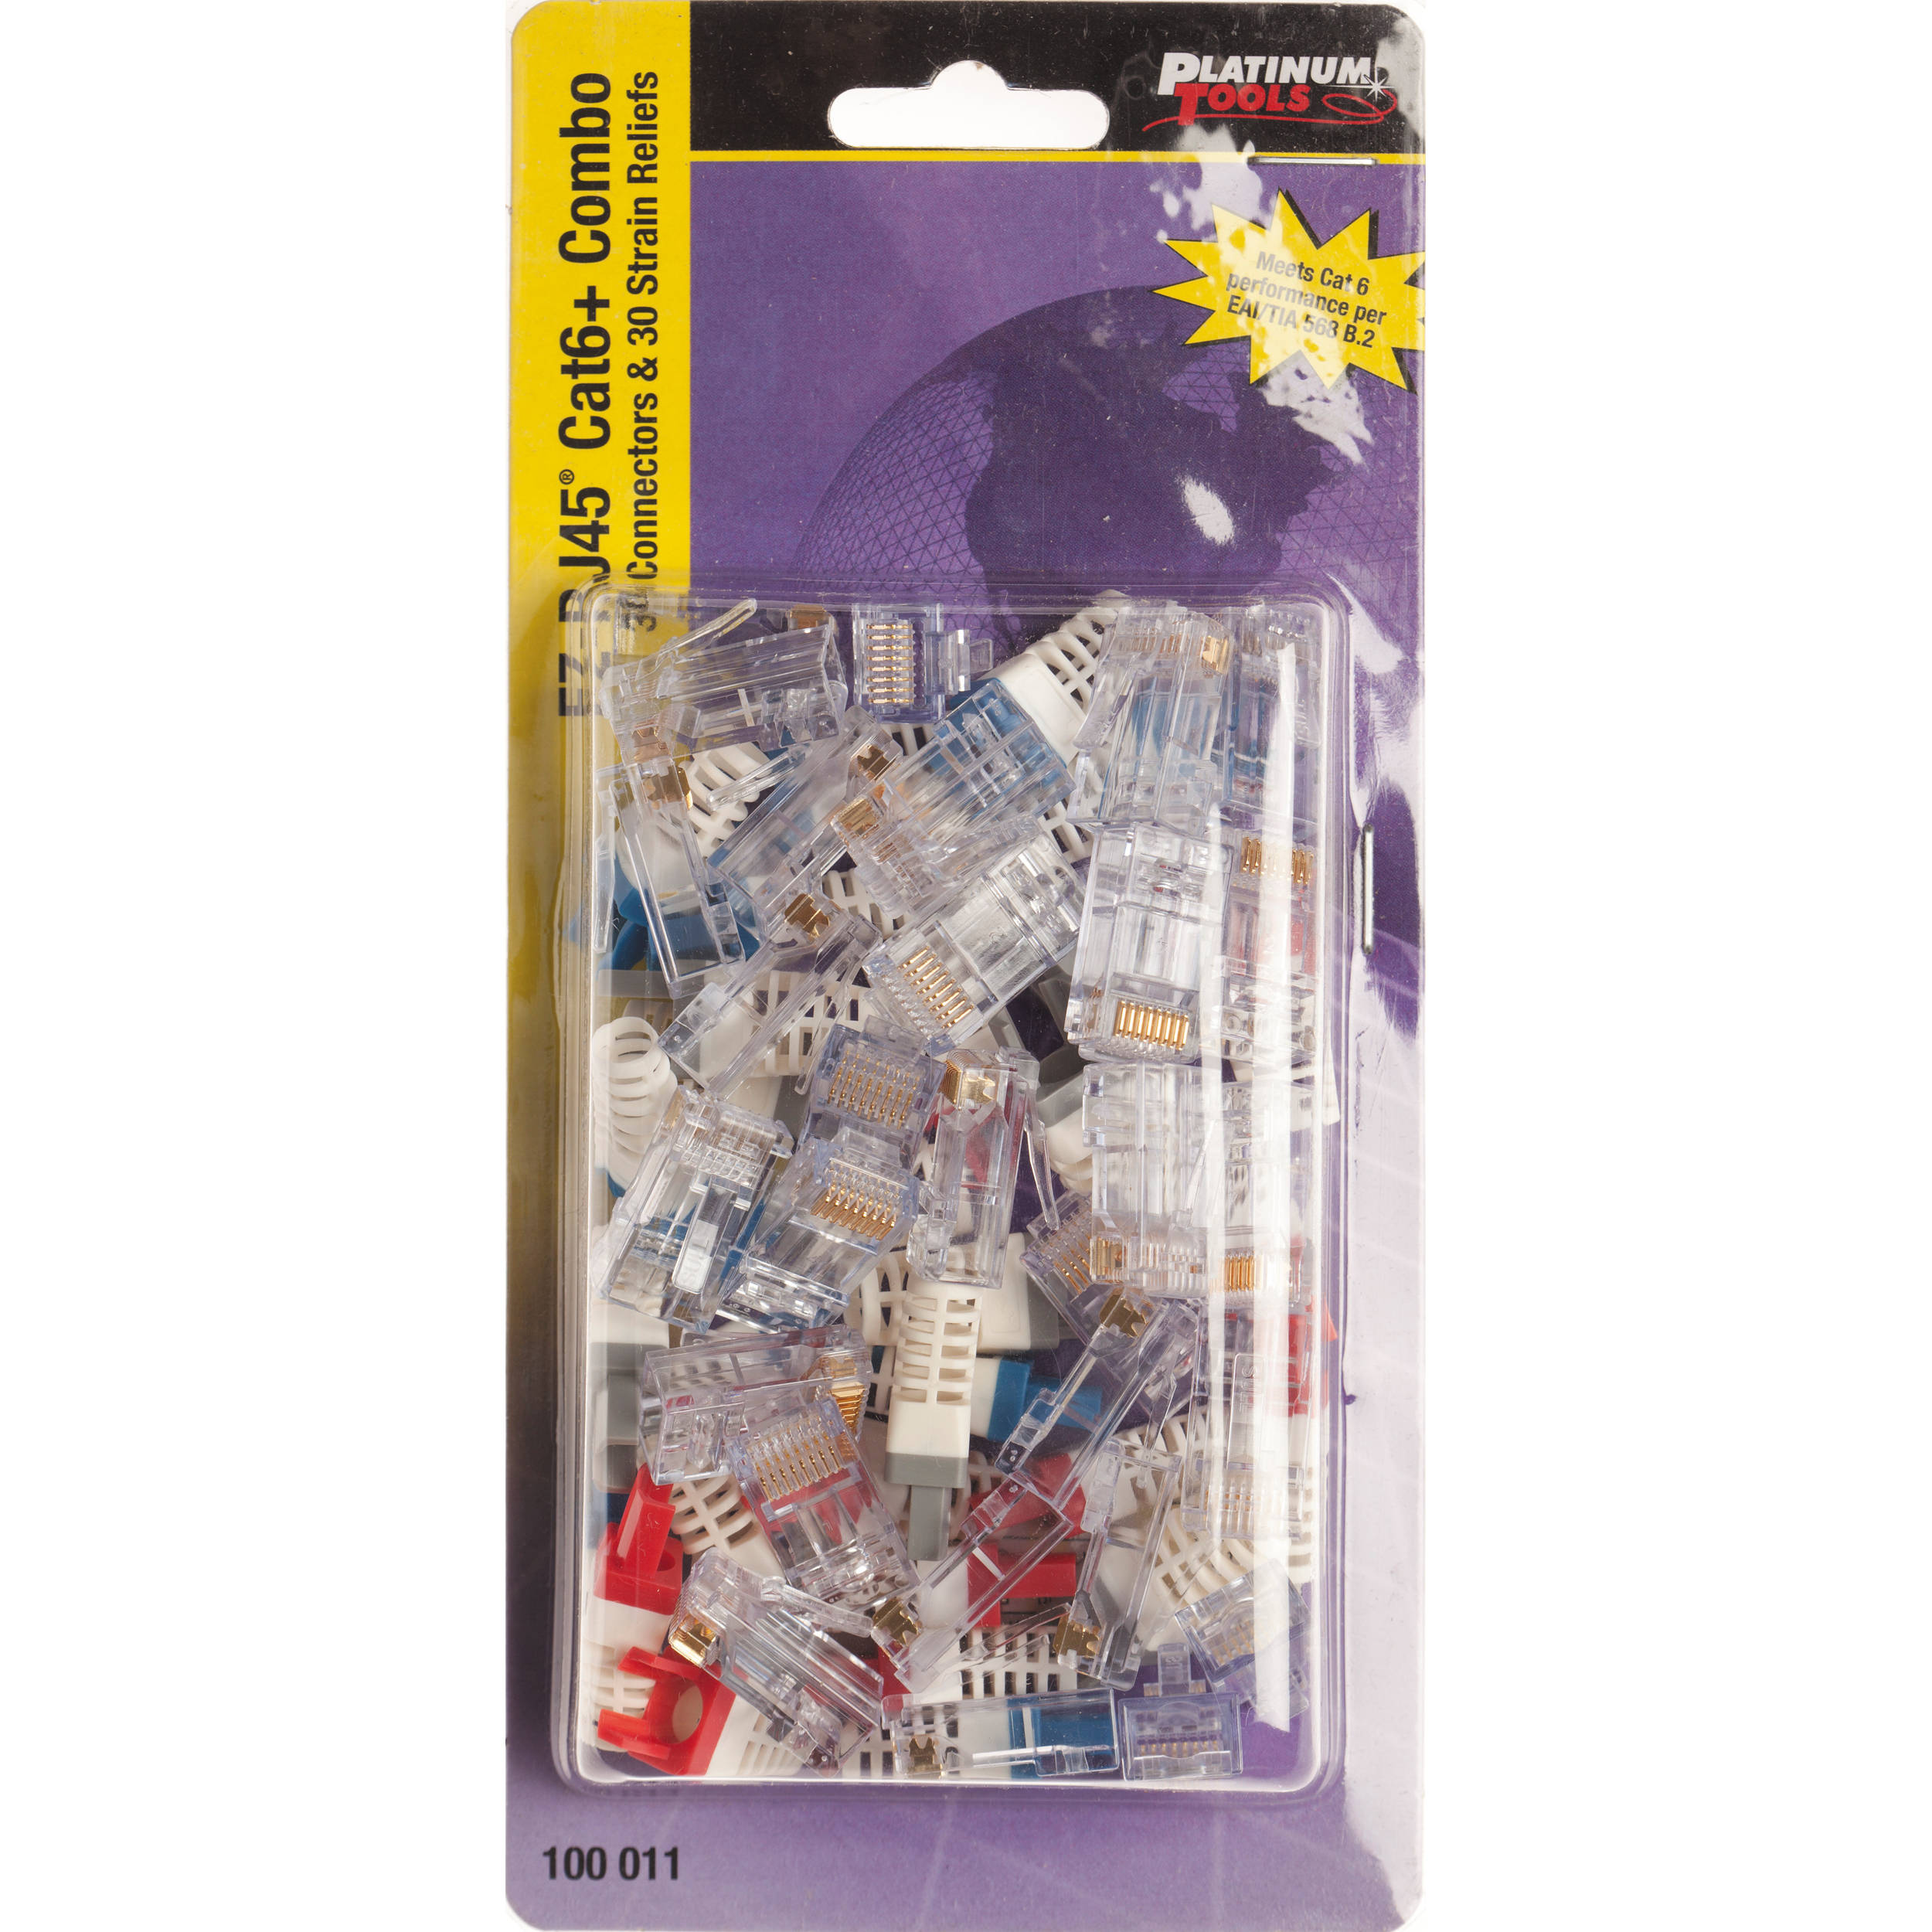 Platinum Tools Ez Rj45 Cat6 Connector And Strain Relief 100011c For A Security Camera Wire Diagram Furthermore Cat 6 Cable Termination Combo Kit 30 Pieces